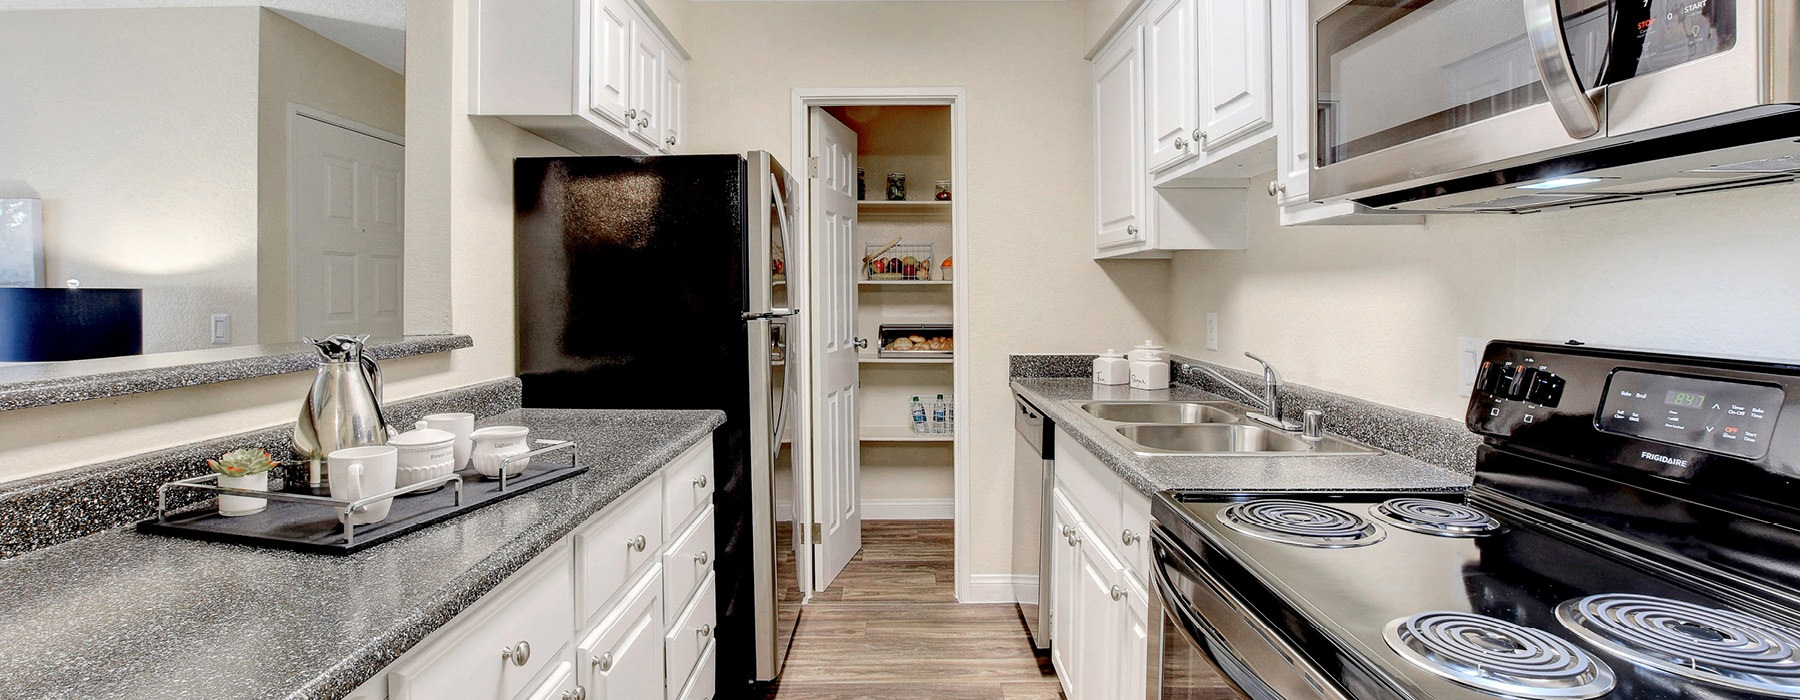 galley kitchen with pantry and bright lighting